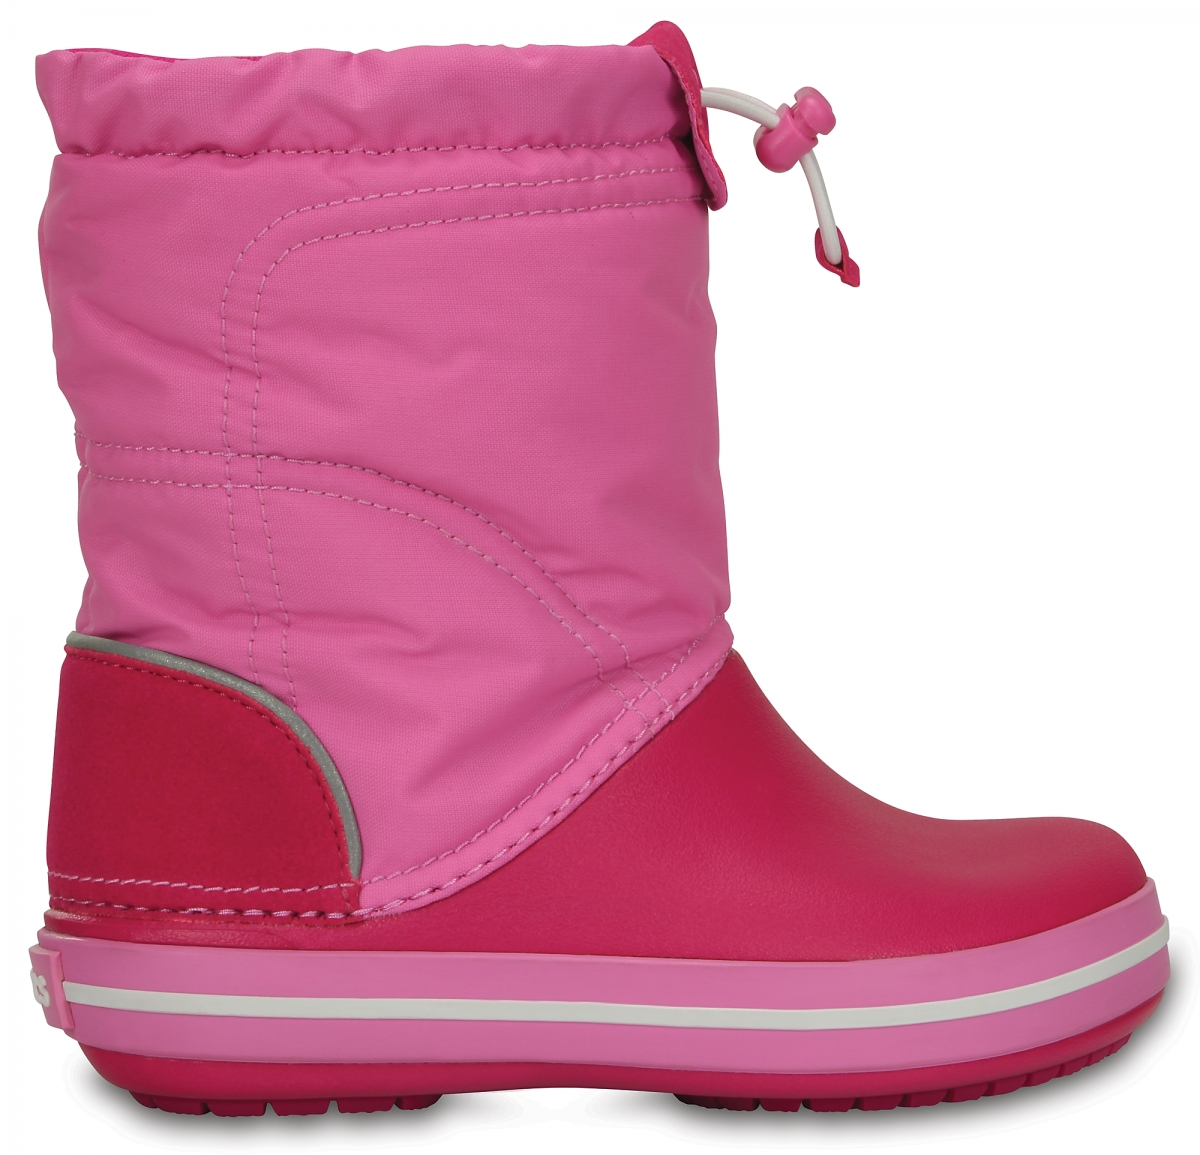 Crocs Crocband LodgePoint Boot Kids Candy Pink/Party Pink, J2 (33-34)